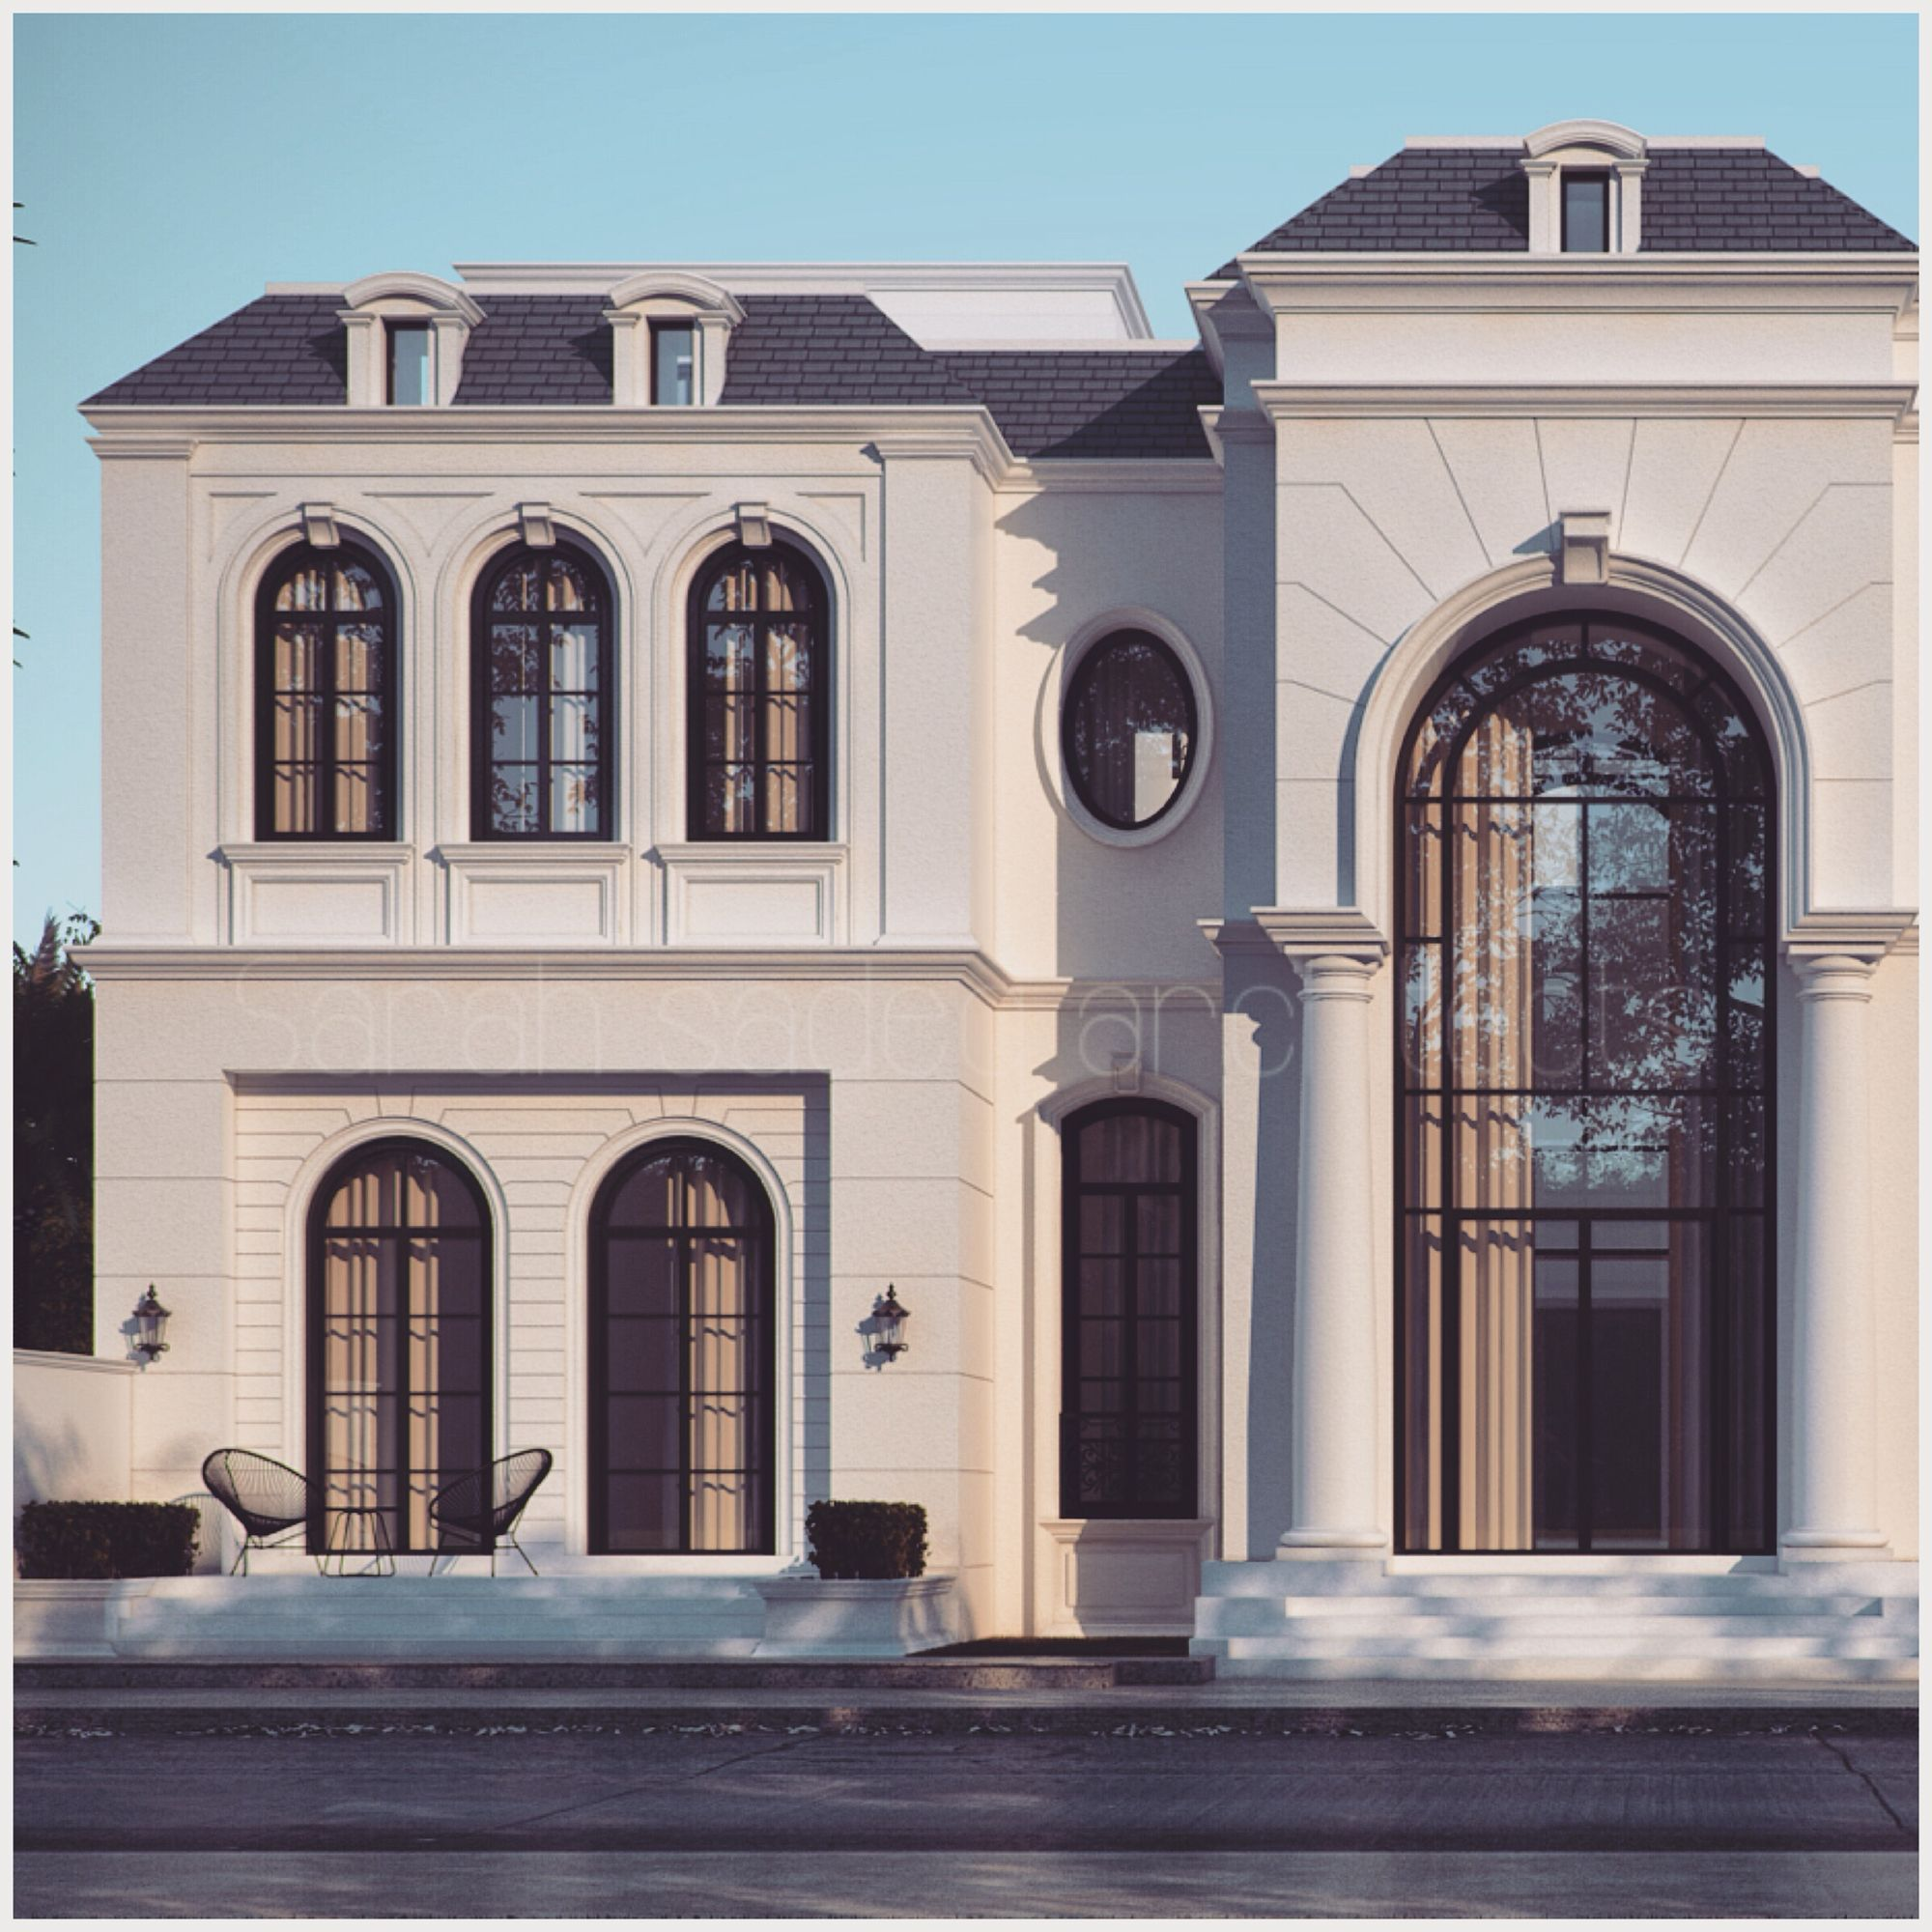 Abu dahbi private villa sarah sadeq architects sarah for Architecture villa design